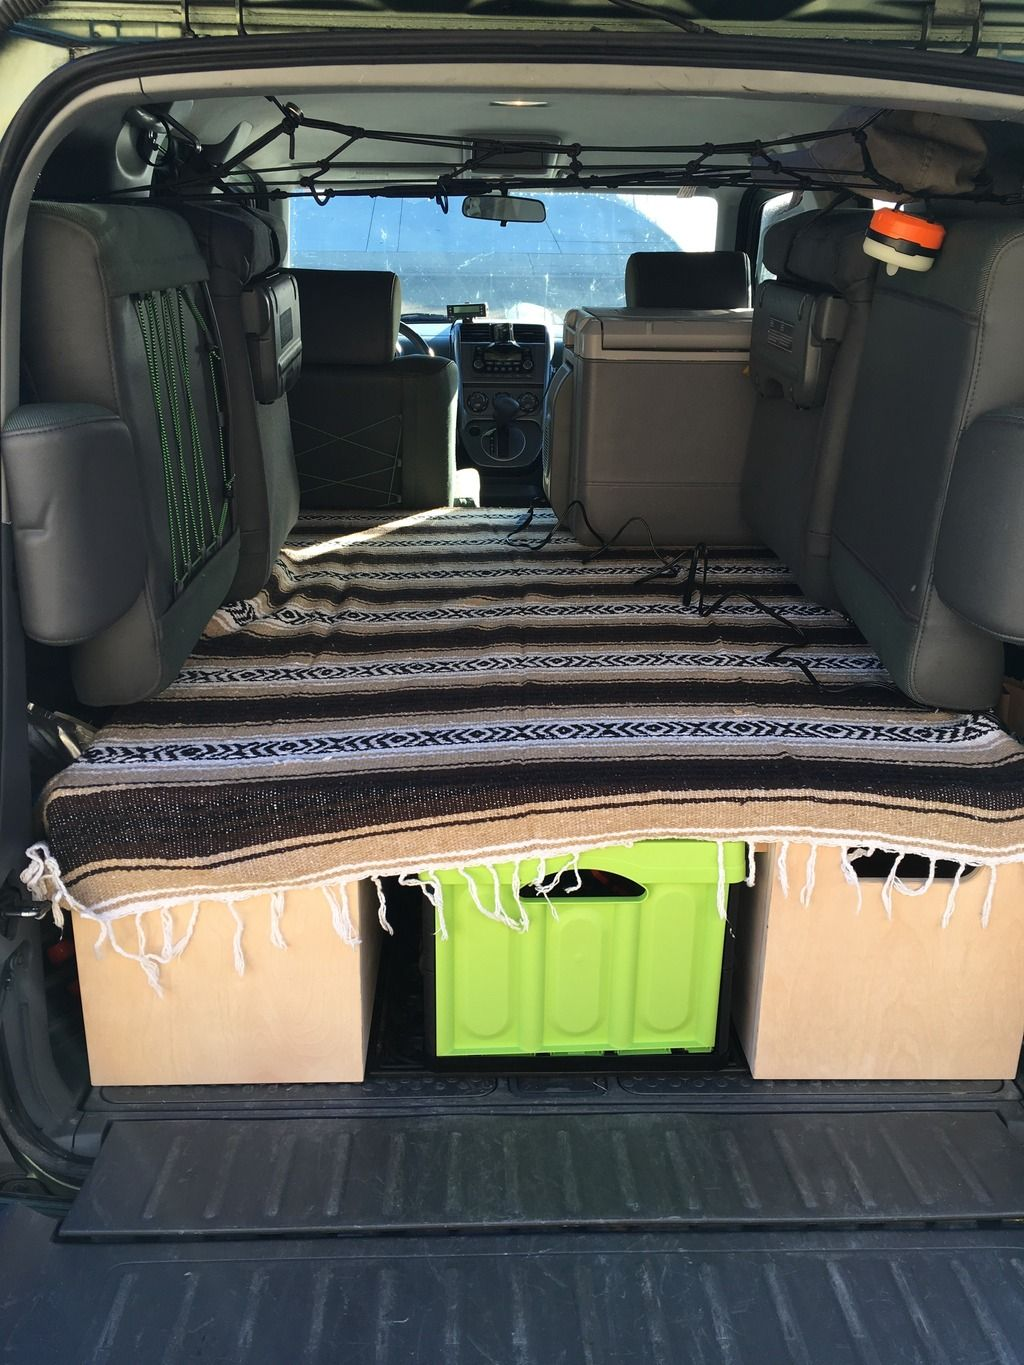 is that yup another sleeping platform honda element owners club forum element. Black Bedroom Furniture Sets. Home Design Ideas